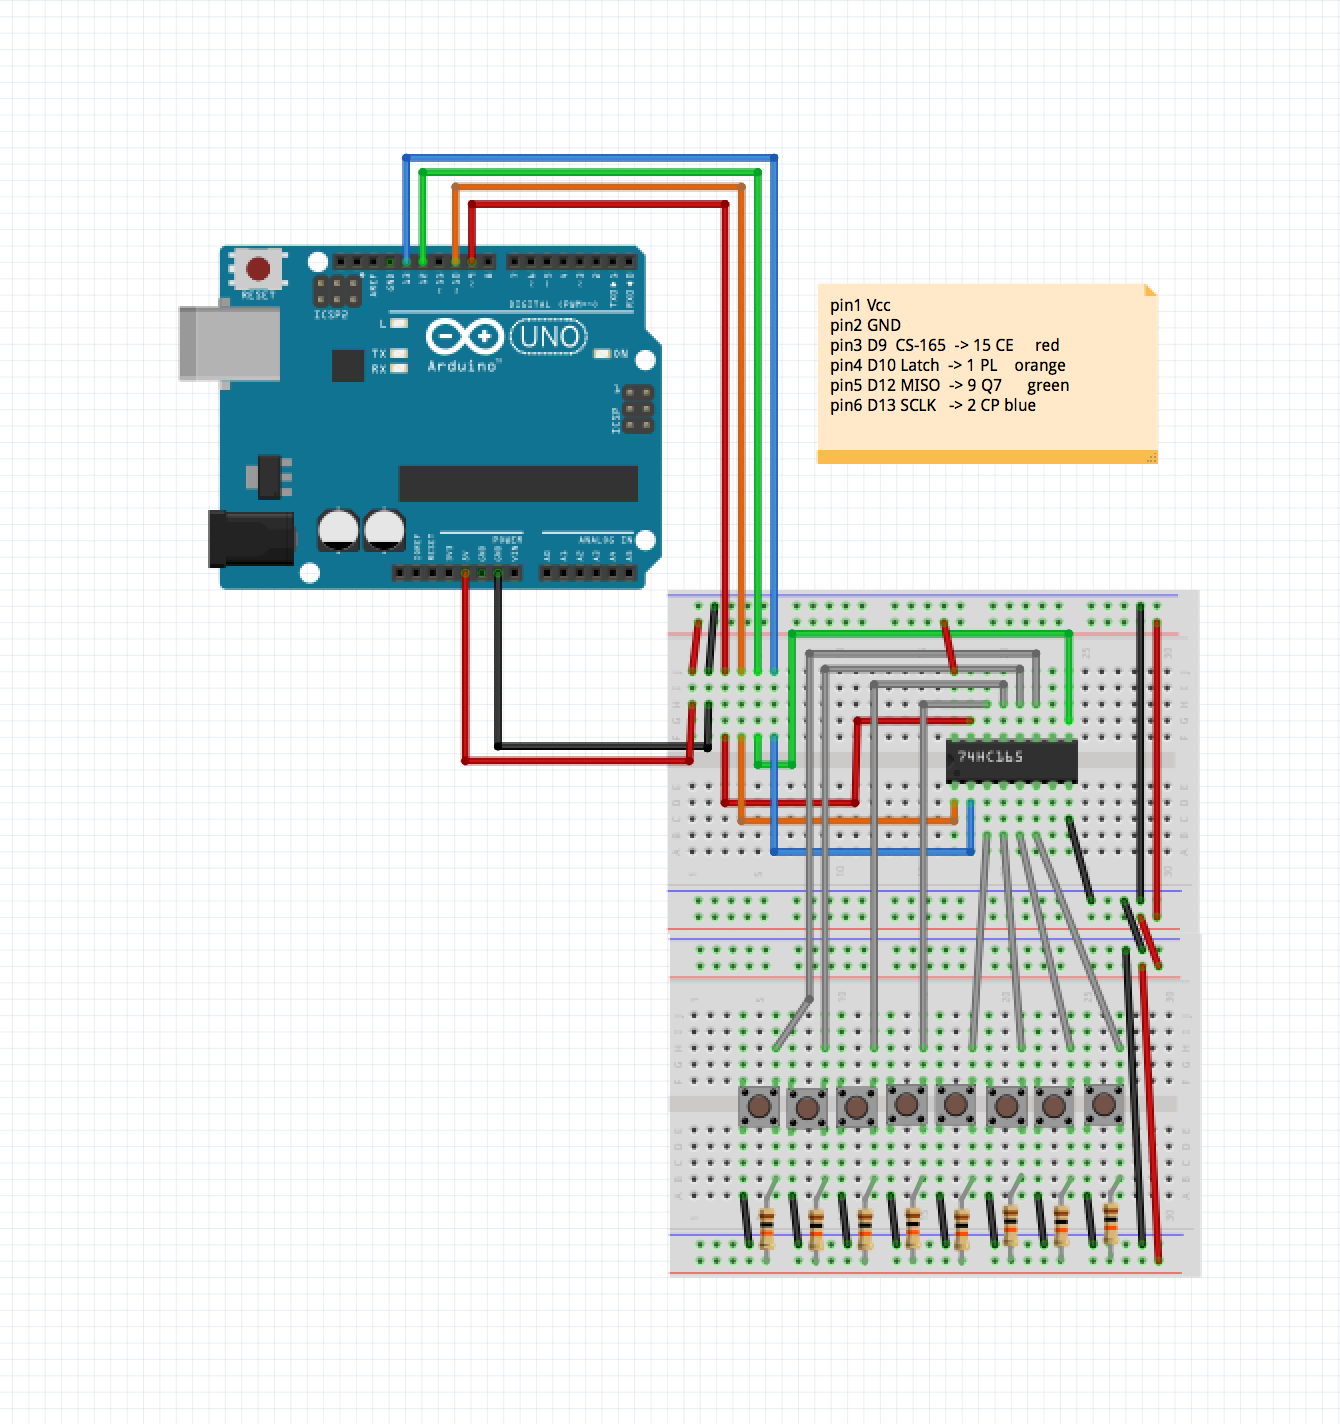 Pcb From Concept To Design Fabrication And Testing Using Fritzing Finally Here Are My Perfboard Layouts Some Pictures Breadboard In Arduino C The Code Receive An 8 Bit Value 74165 Chip Is Simply